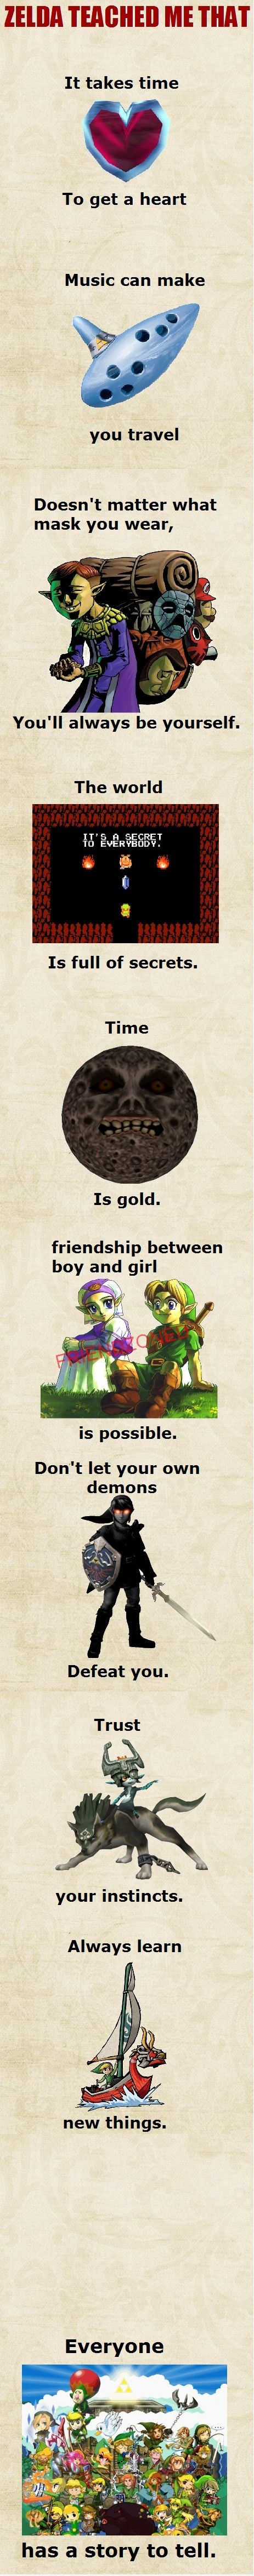 "What The Legend of Zelda taught me..even though the title says it ""teached me"" lol"